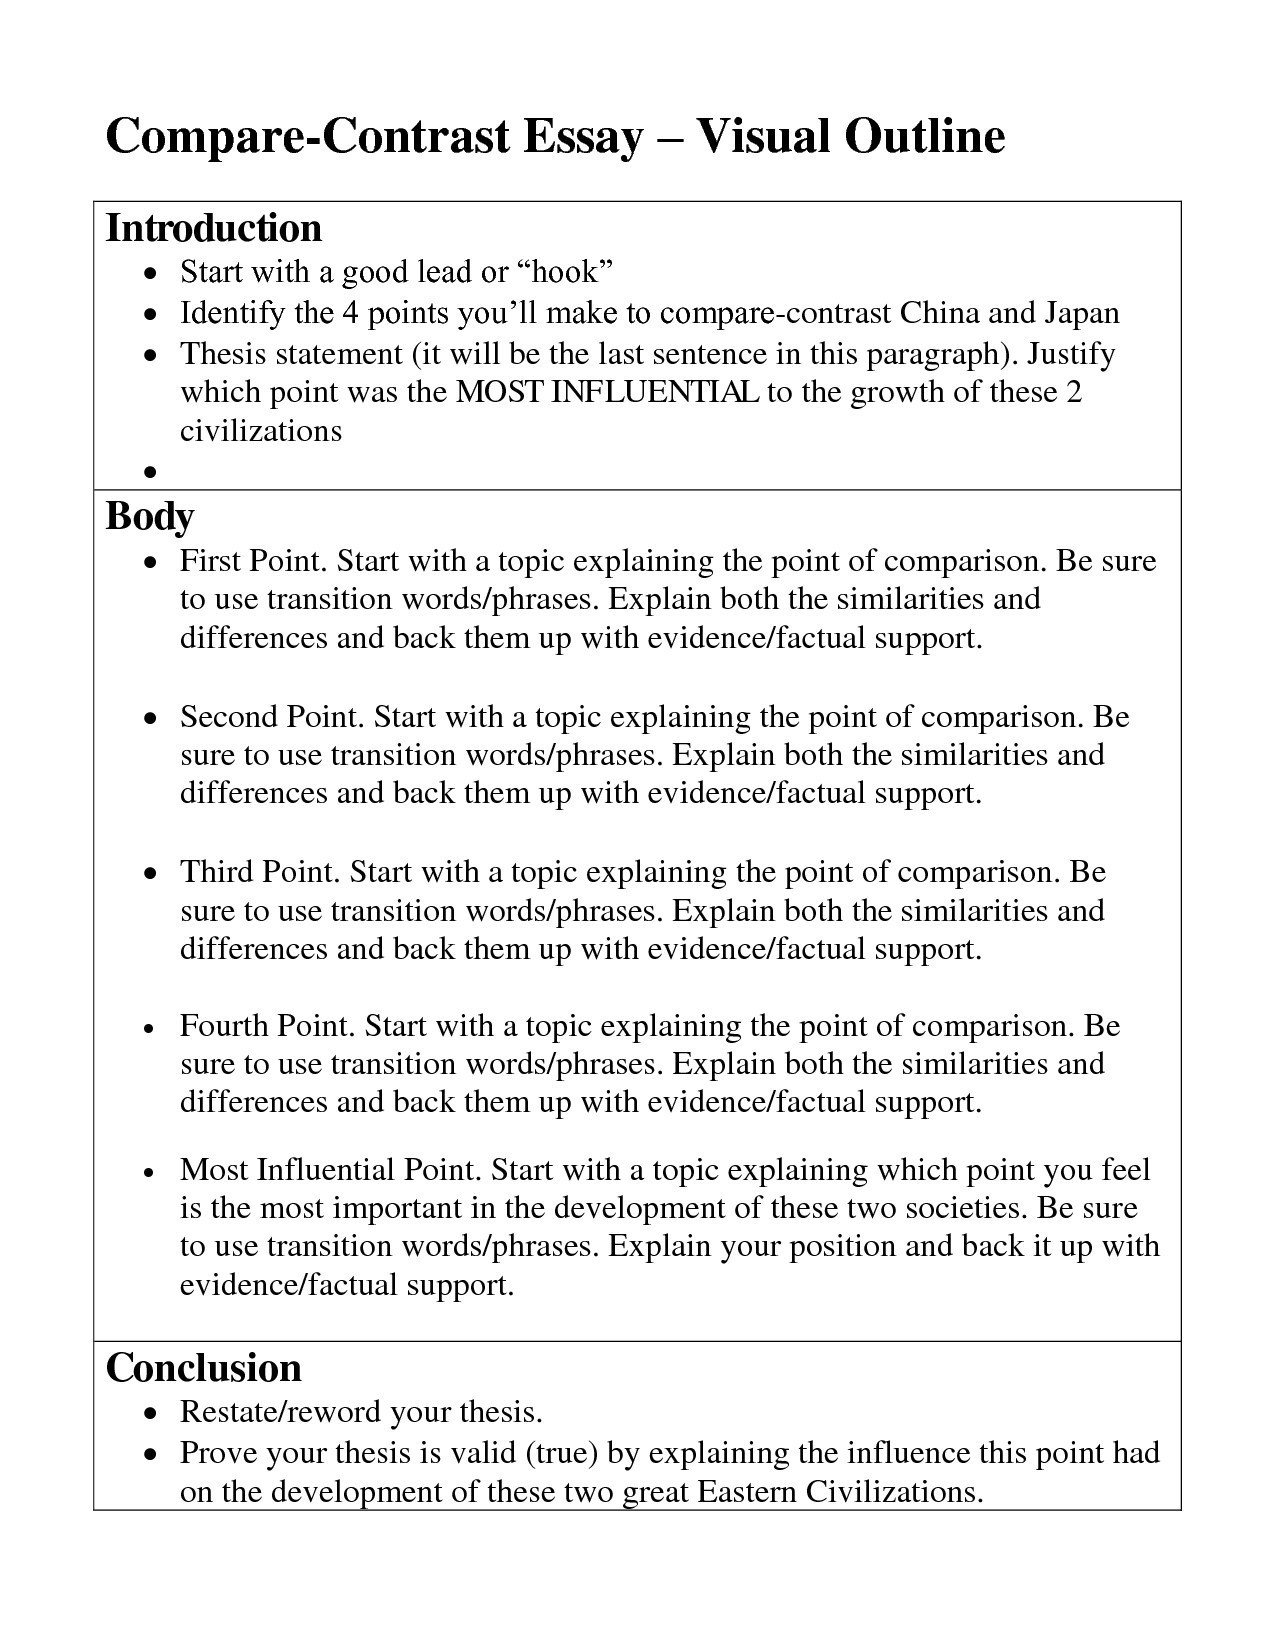 019 Essay Example Writing Good Hooks Worksheet Refrence Laws Fresh How To Write Hook For An Ess Argumentative Narrative The Best College Sentence Informative About Yourself Expository Outstanding Make A Catchy Great Full